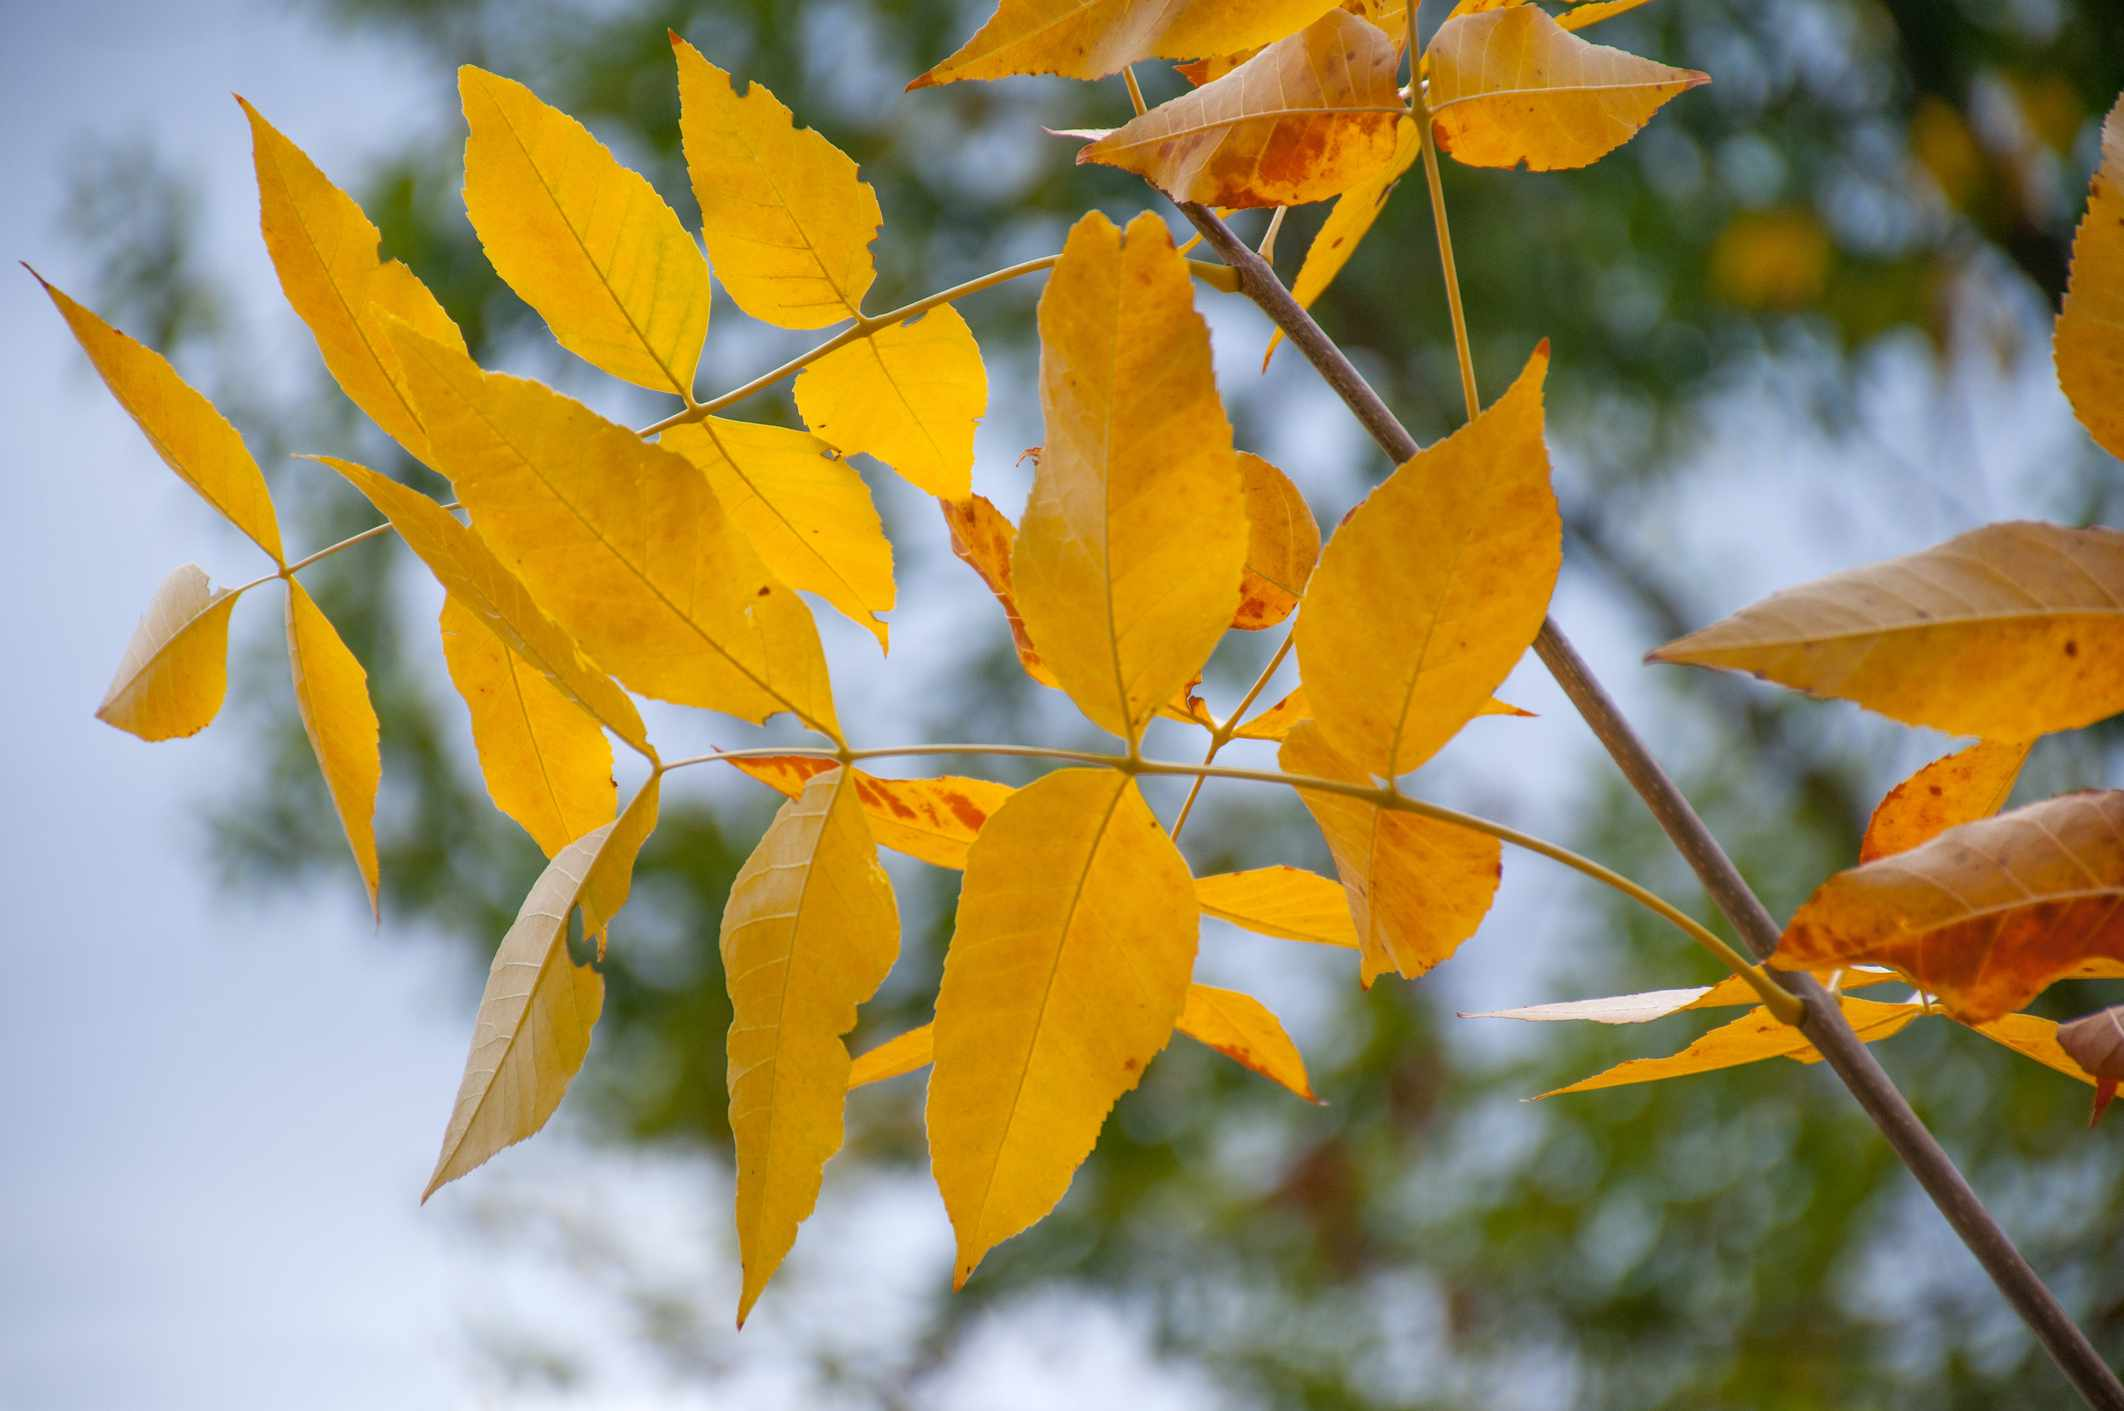 Detailed shot of yellow leaves on an Ash Tree.